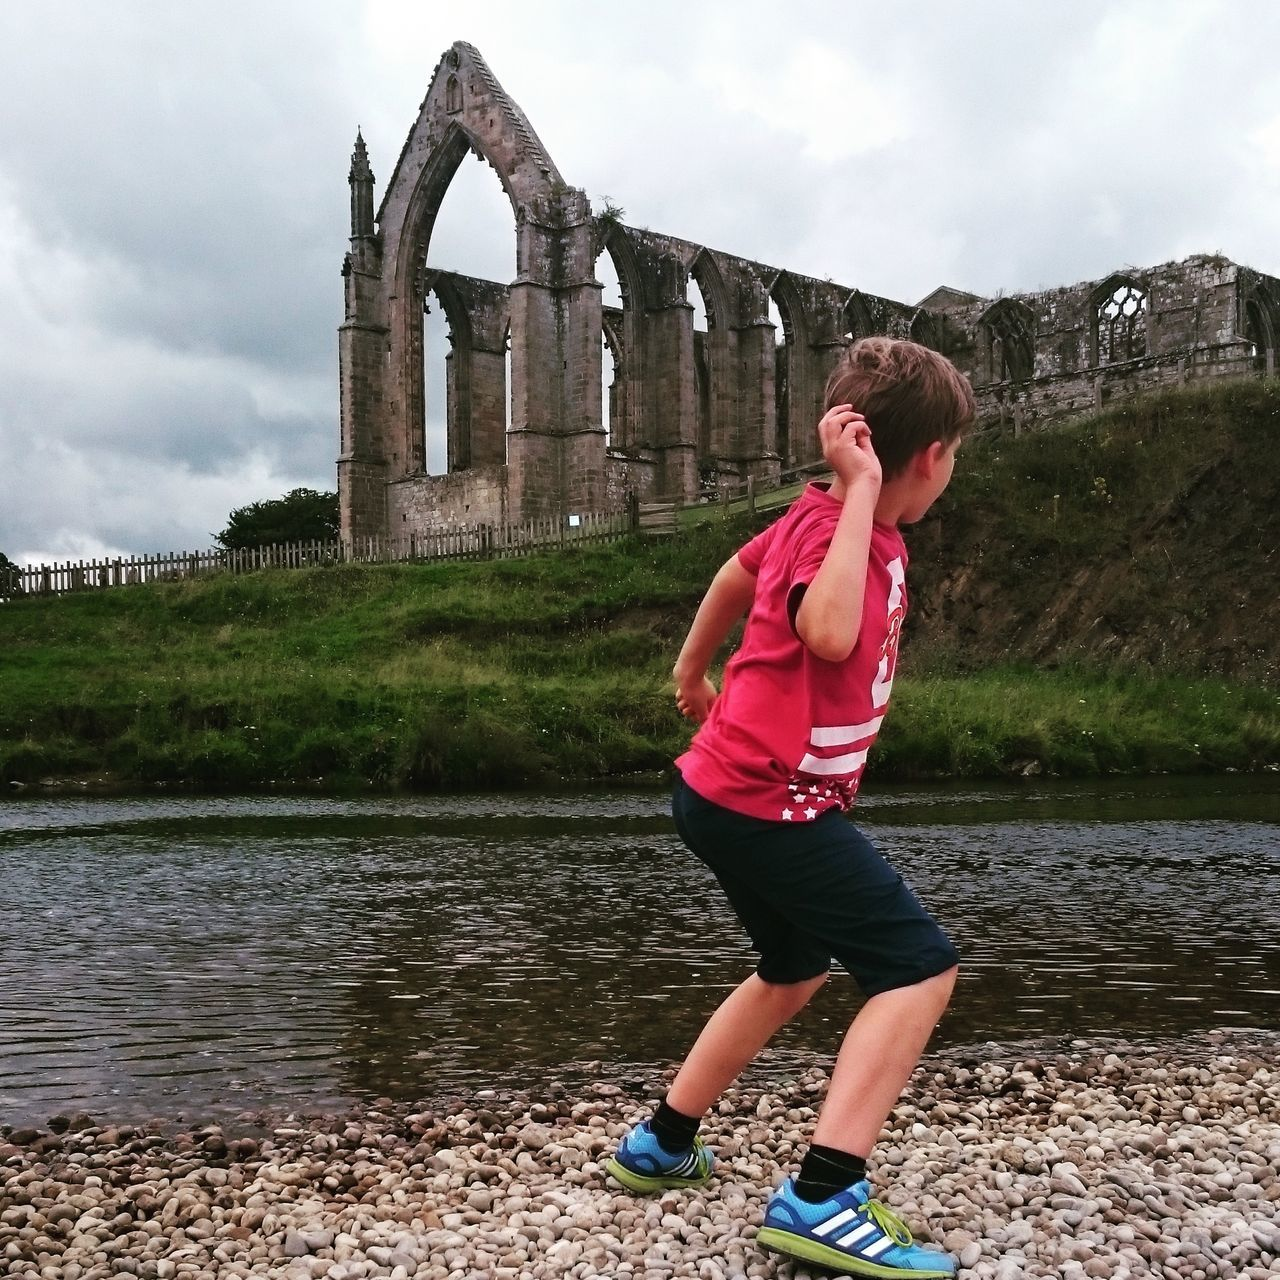 Rear View Full Length Of Boy Throwing Stone In River Against Bolton Abbey